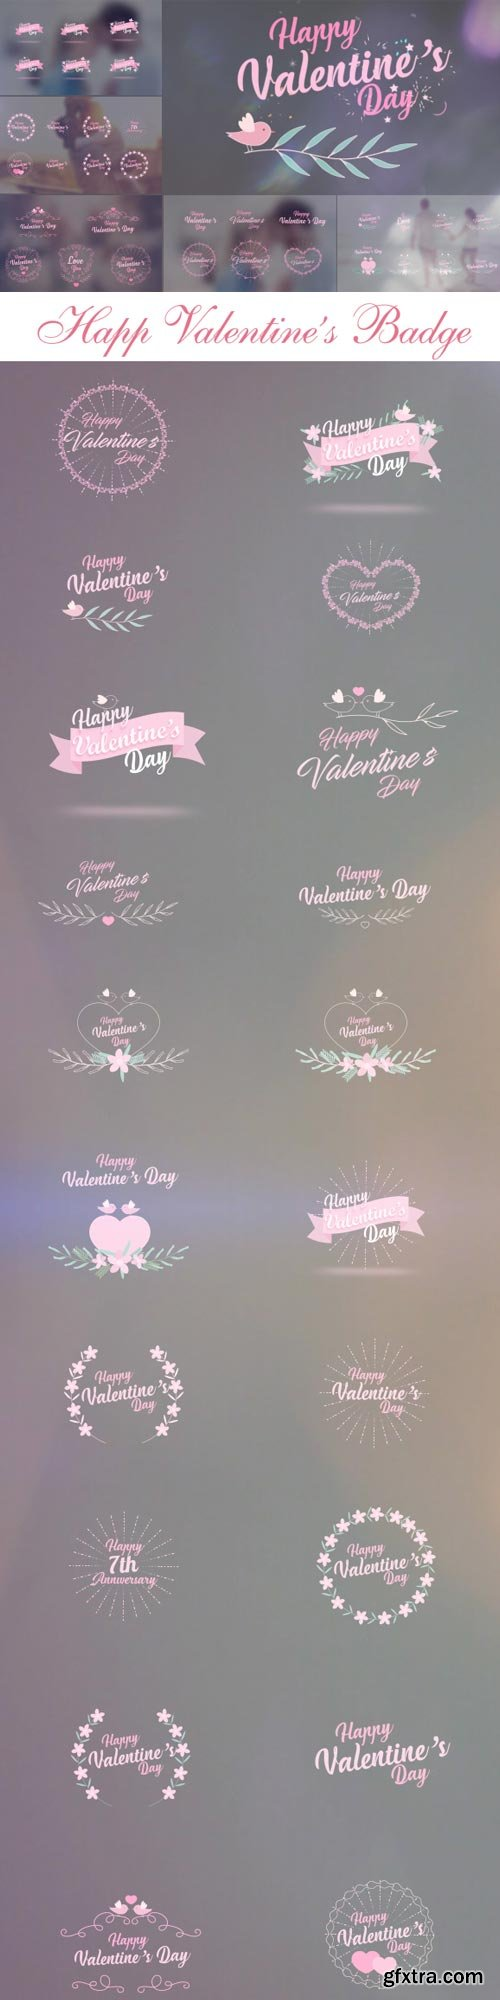 Videohive - Valentine\'s Day Badge Pack - 19334517